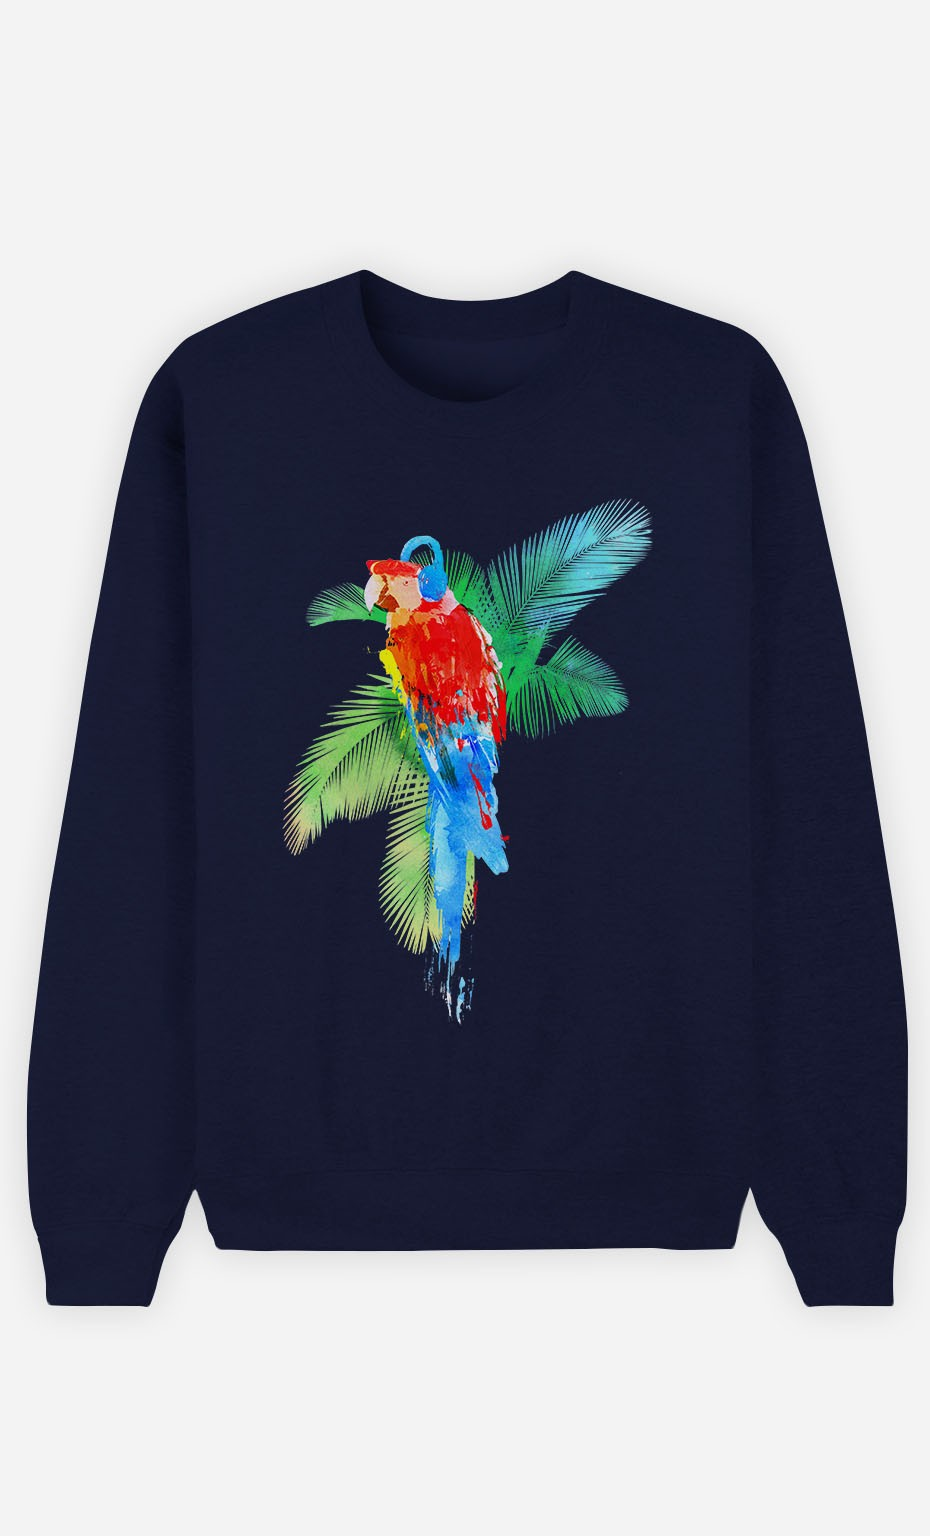 Blue Sweatshirt Parrot Party